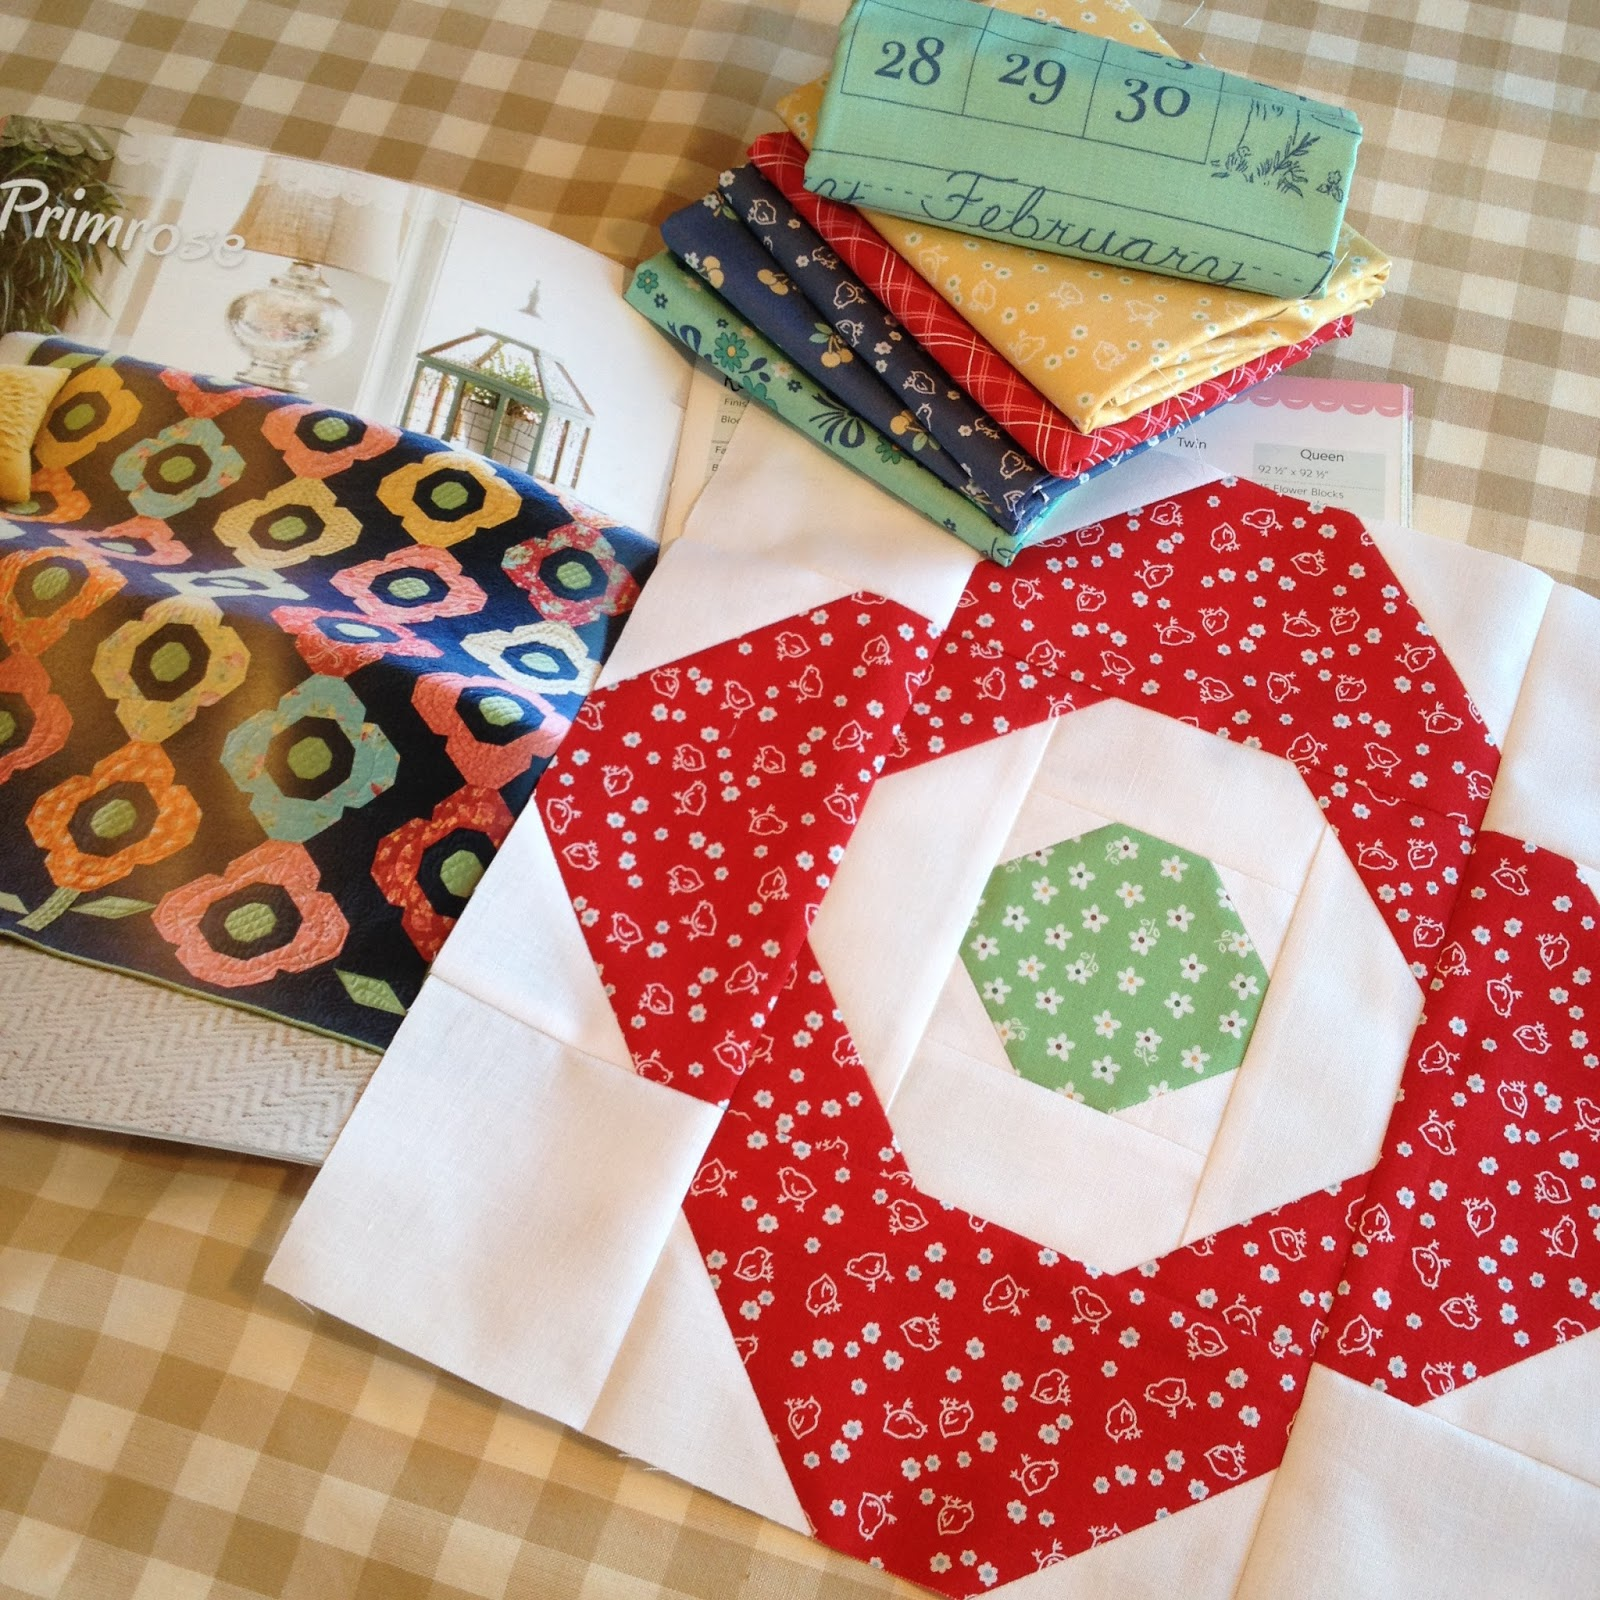 Carried Away Quilting: Fun with Fat Quarter Style & Calico Days : calico house quilt shop - Adamdwight.com